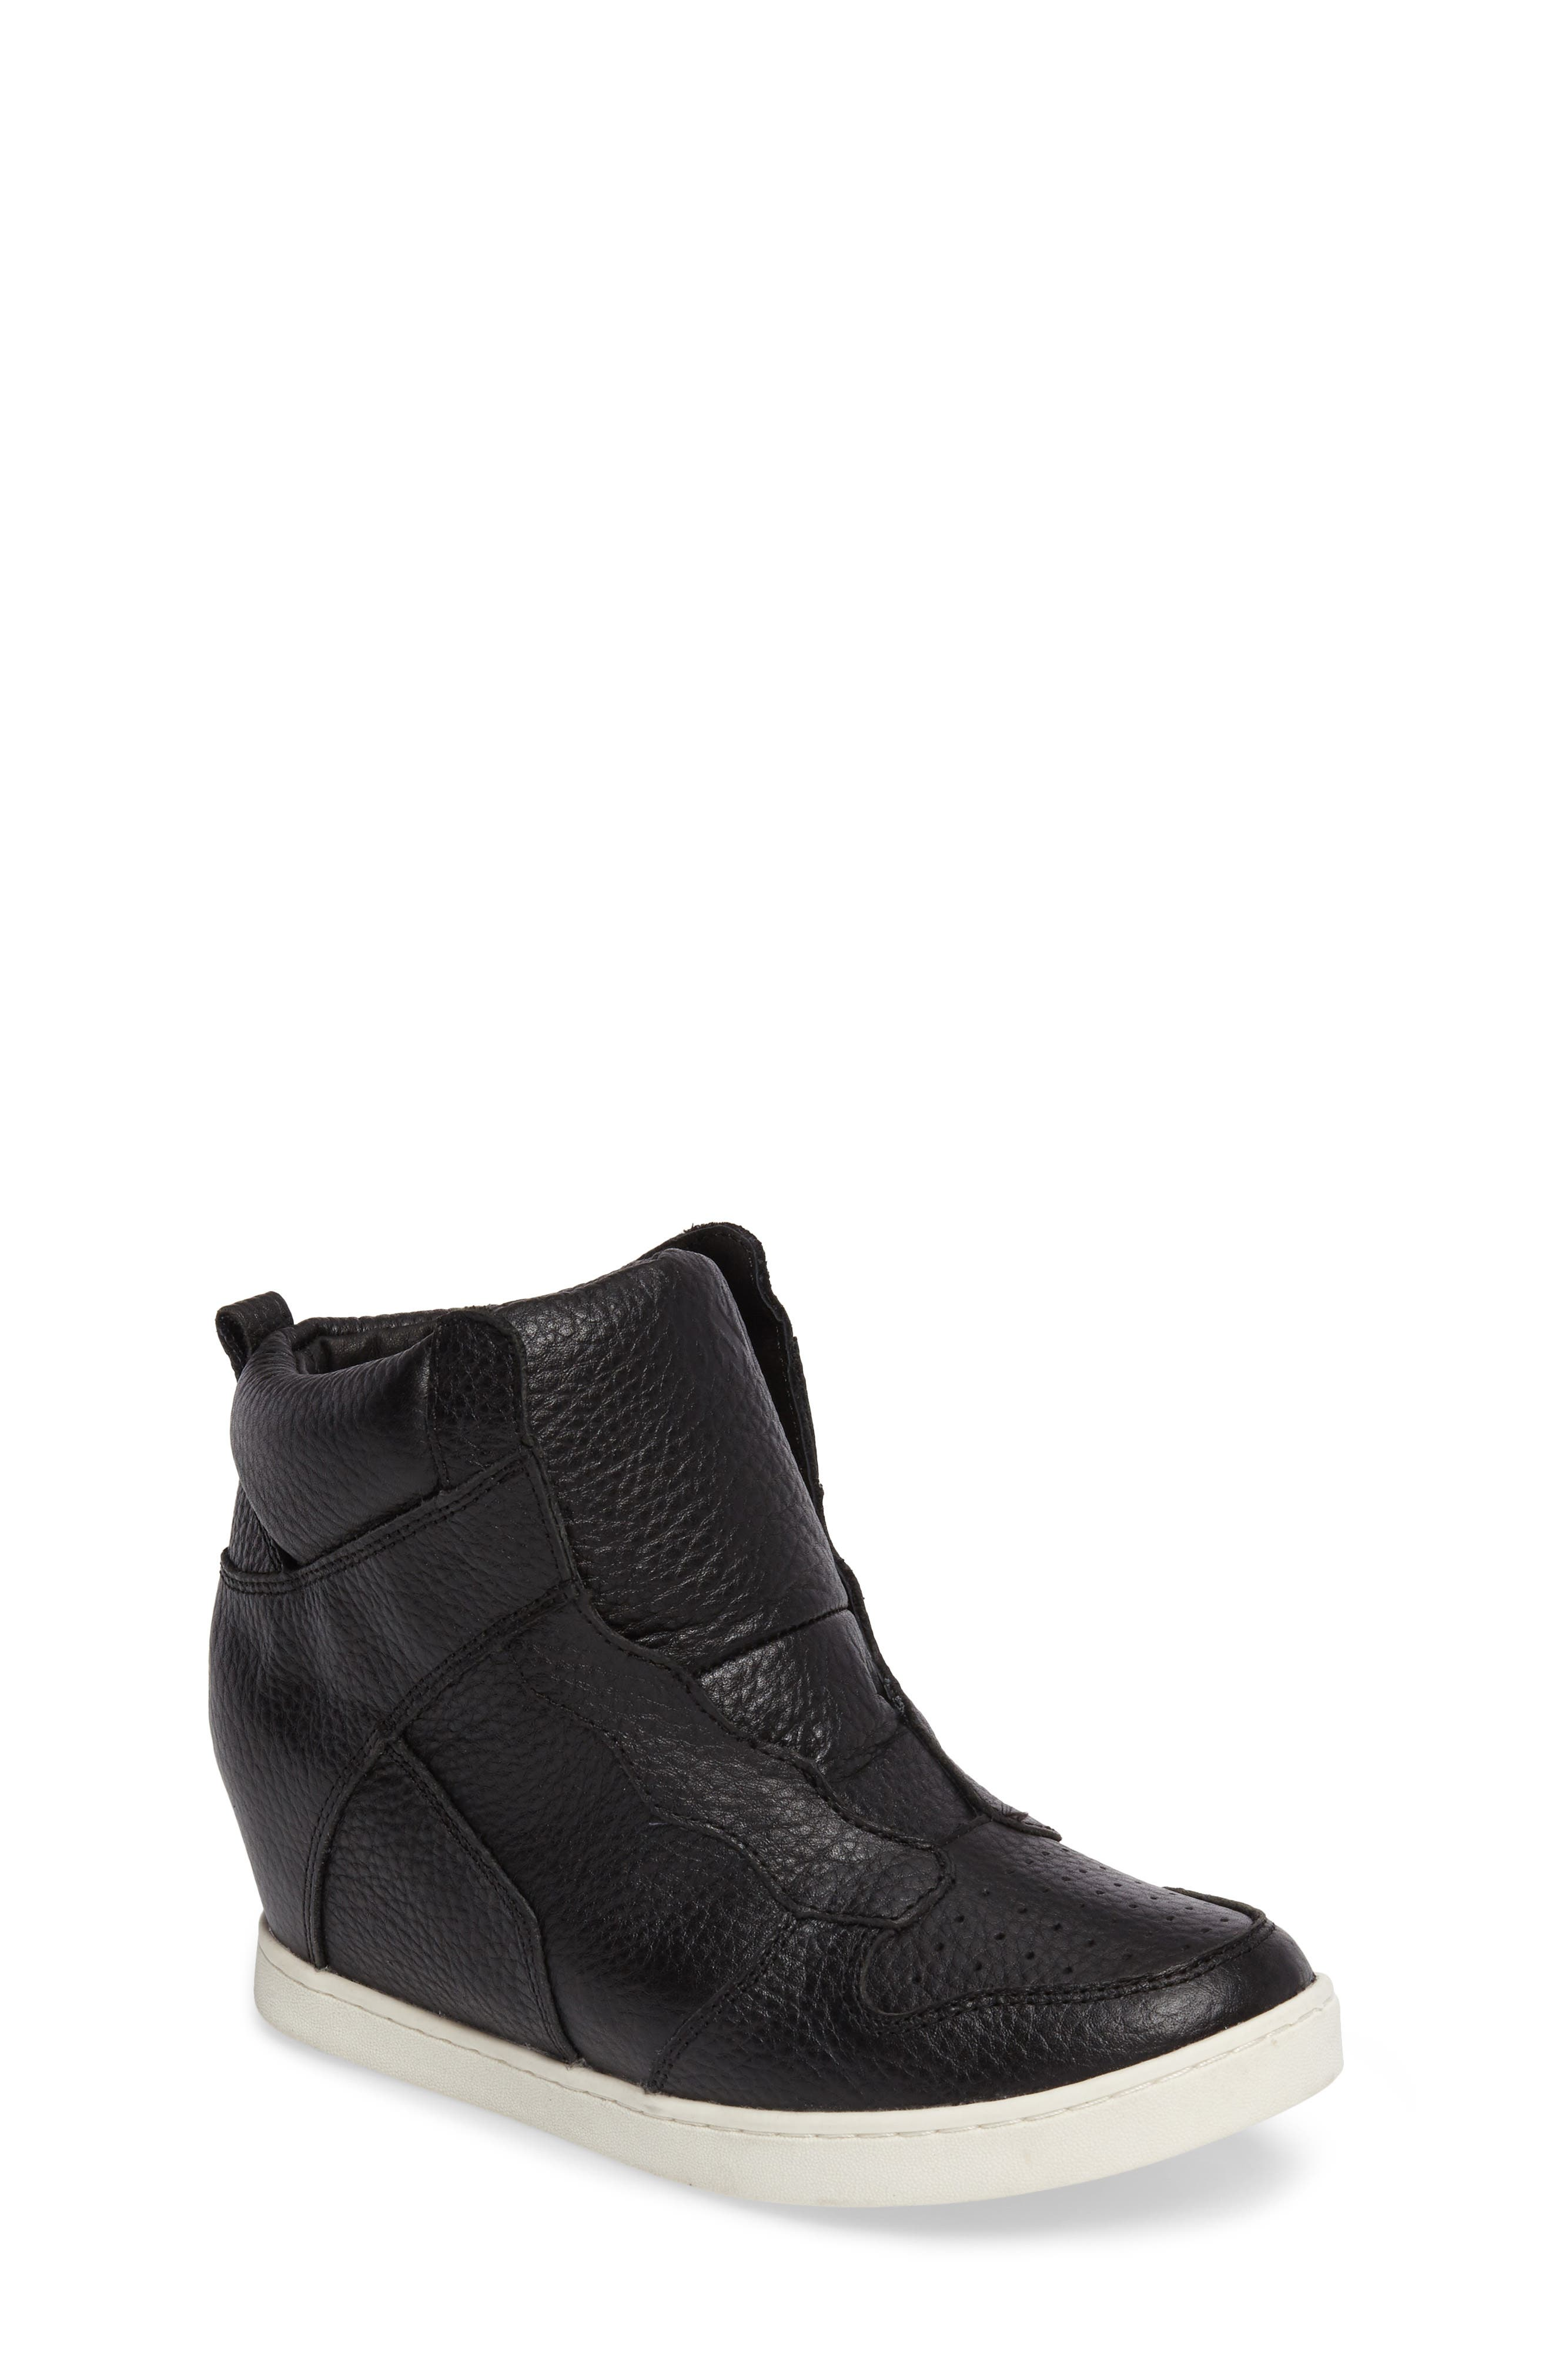 Main Image - Ash Syndey Laceless Concealed Wedge Bootie (Toddler, Little Kid & Big Kid)